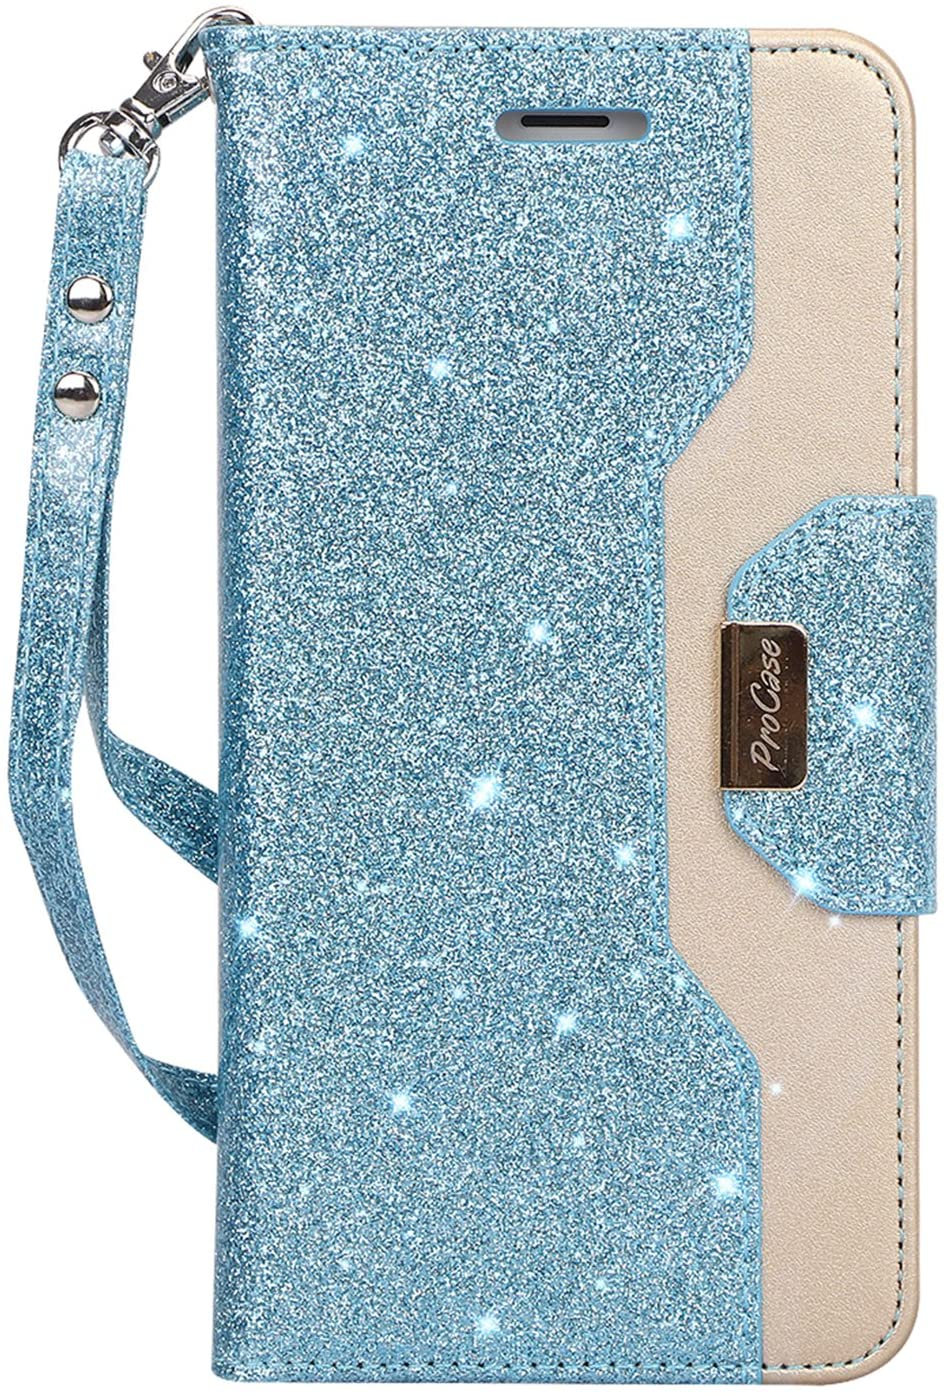 ProCase iPhone 8 Plus/7 Plus Wallet Case, Flip Fold Card Case Stylish Slim Stand Cover with Wallet Case for Apple iPhone 8 Plus/iPhone 7 Plus -Glitterblue